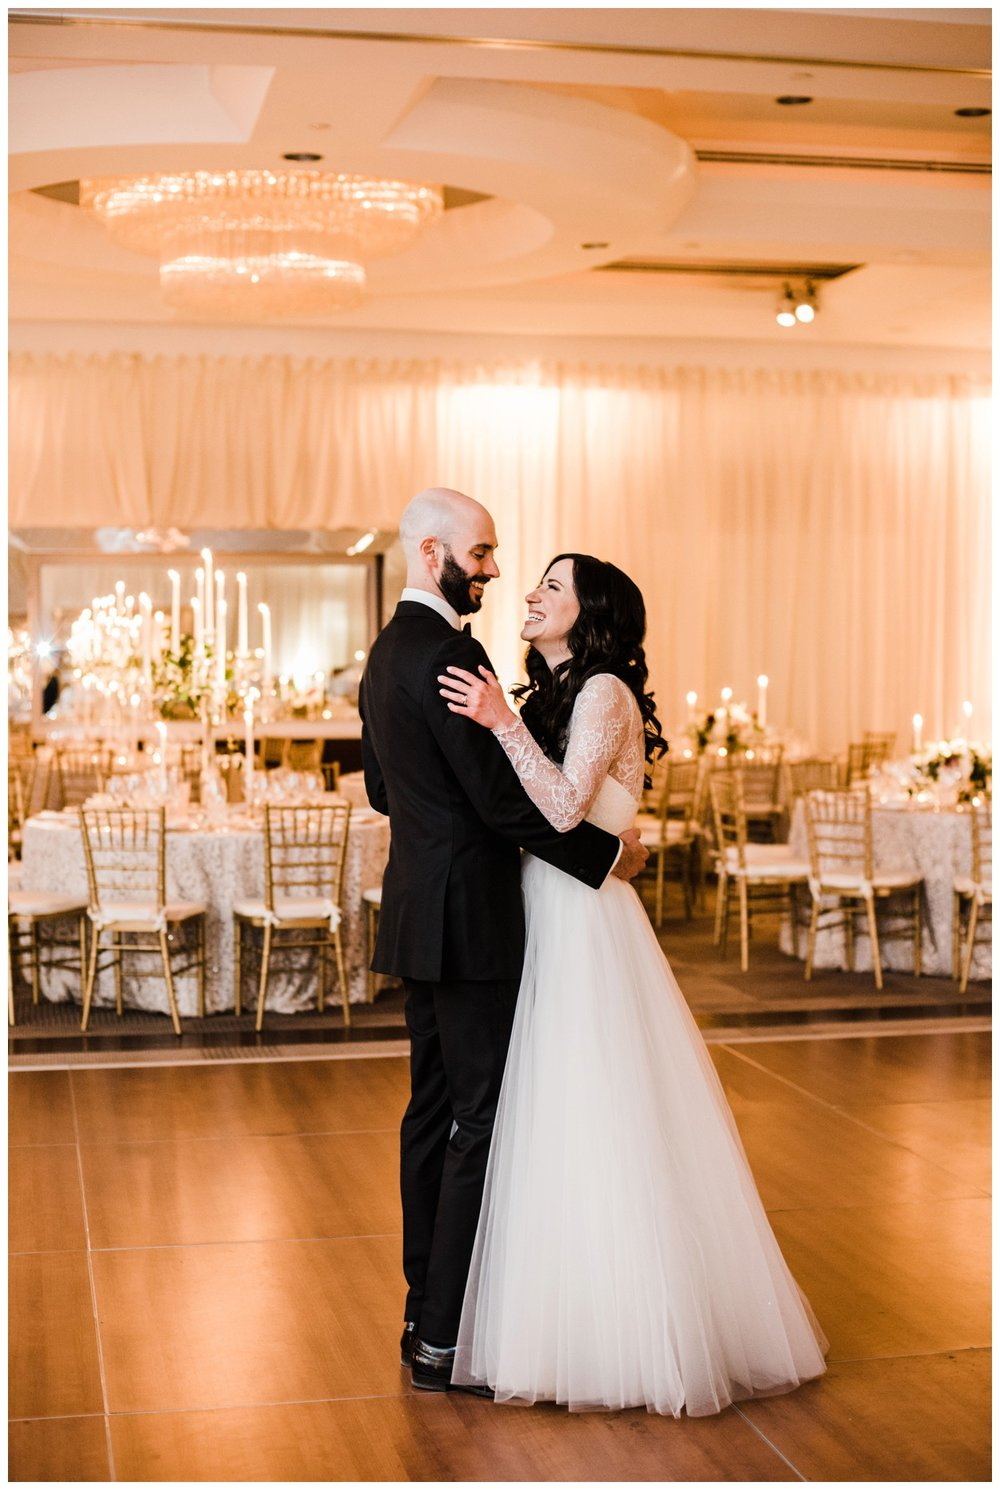 Spring Wedding in Shades of Pink at the Park Hyatt Washington DC by fine art wedding photographer Lissa Ryan Photography candlelit ballroom reception with lace linens practice first dance